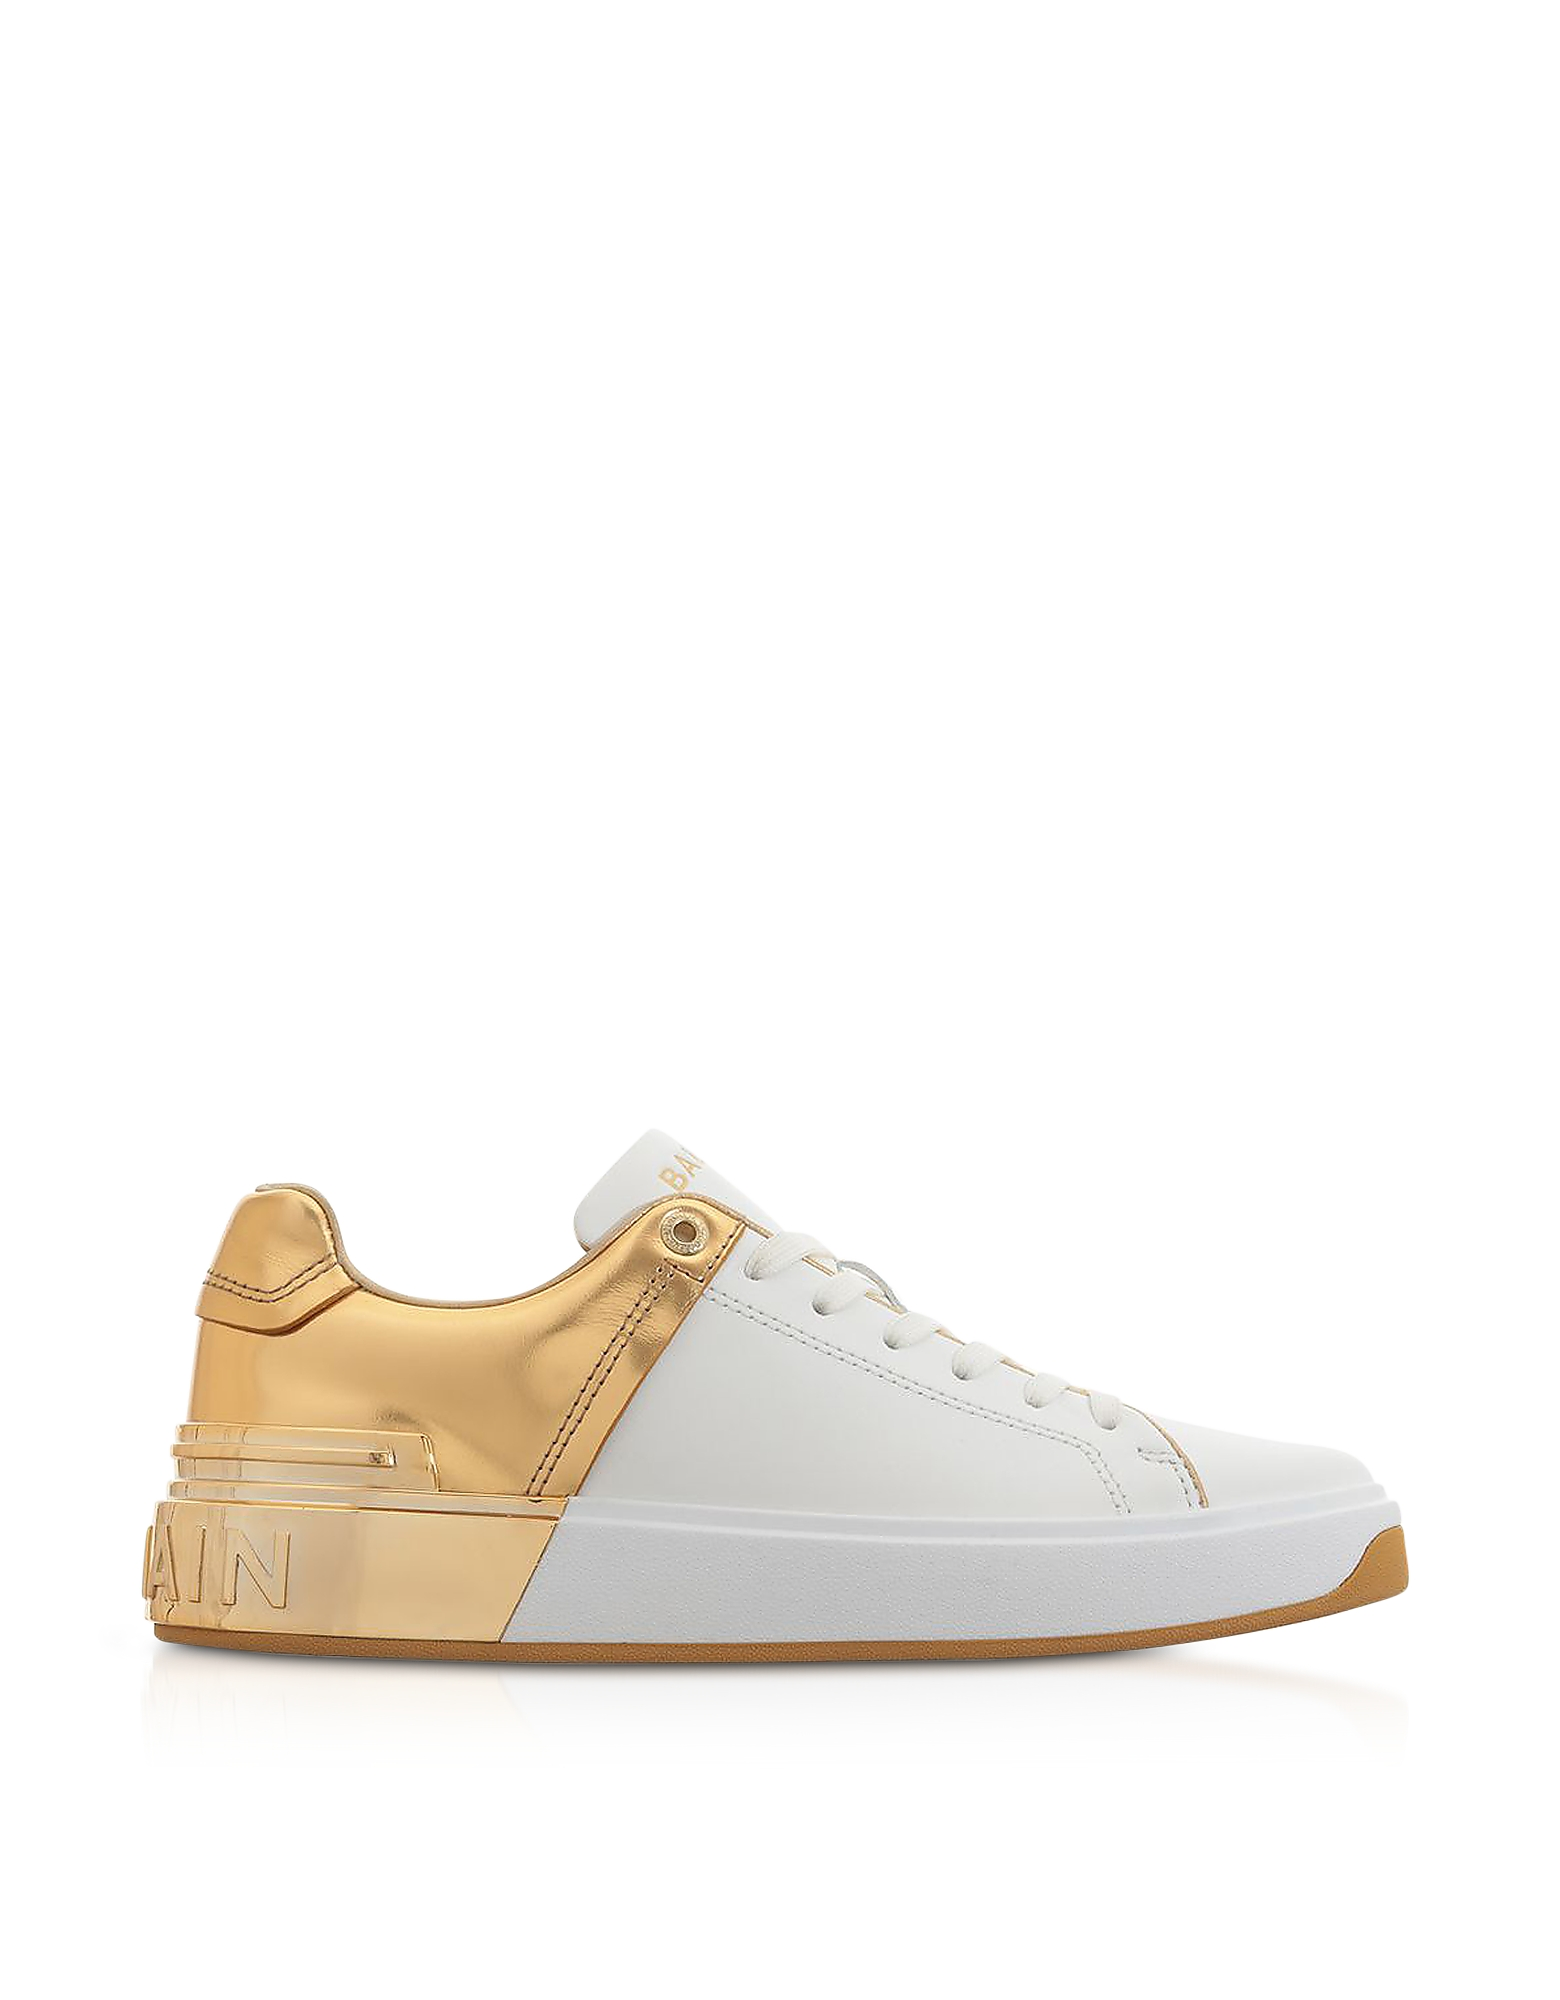 Balmain Designer Shoes, White & Gold Leather Lace up Women's Sneakers